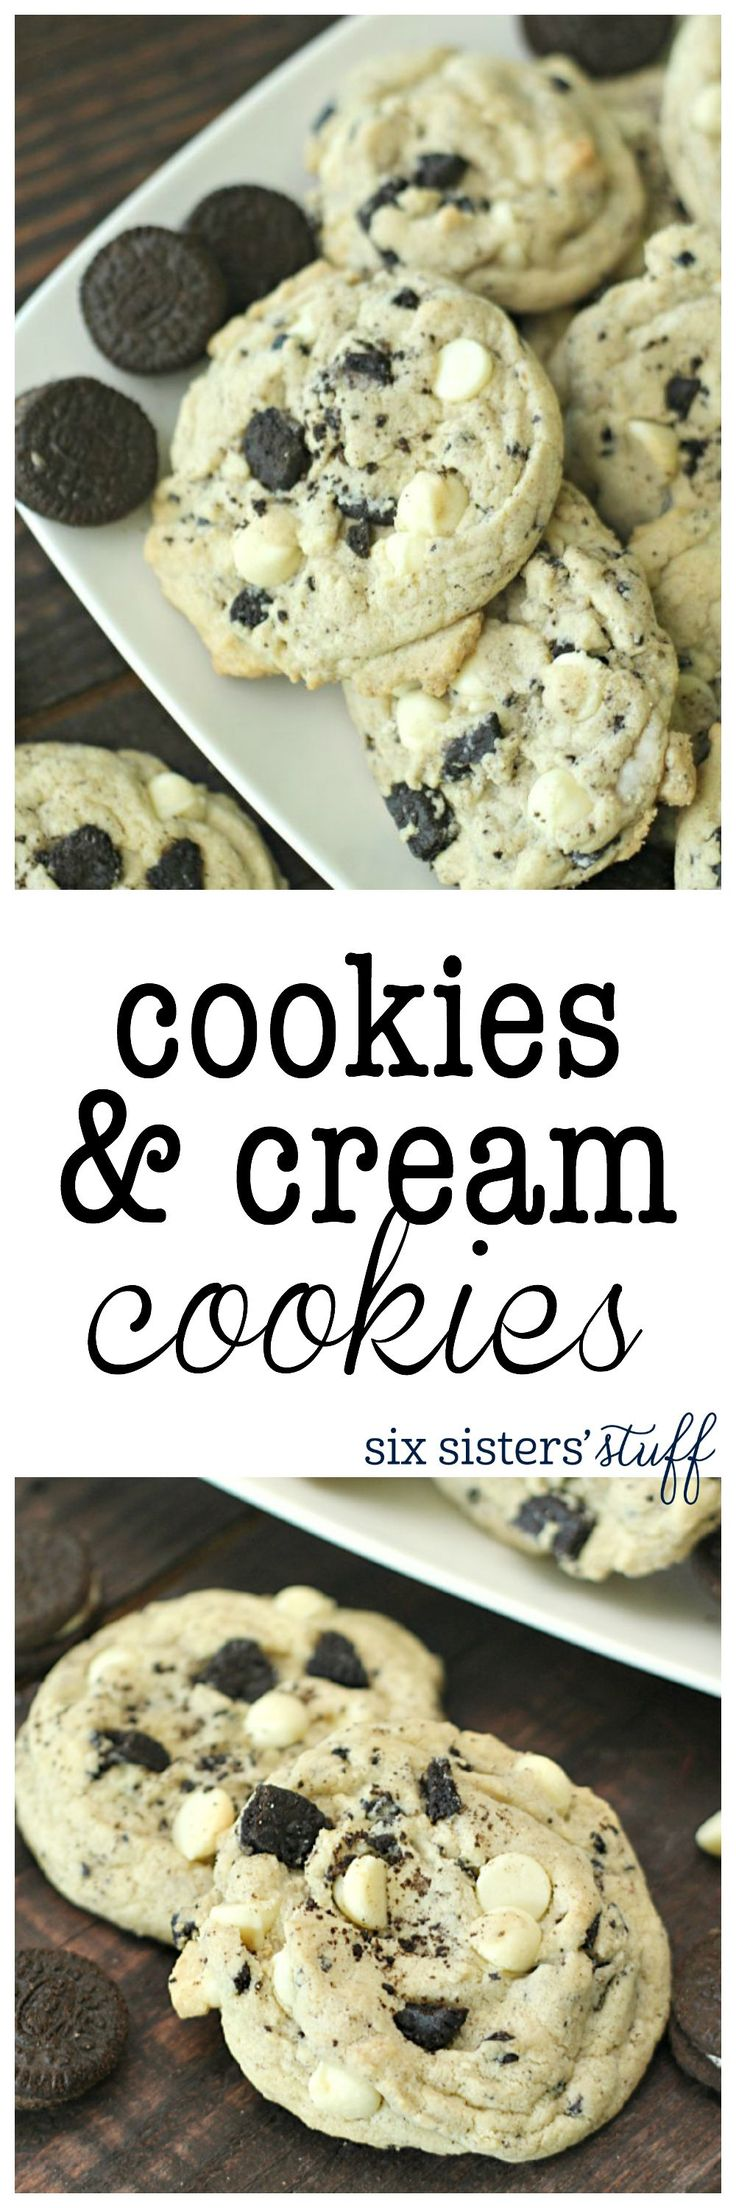 Cookies and Cream Cookies from SixSistersStuff.com